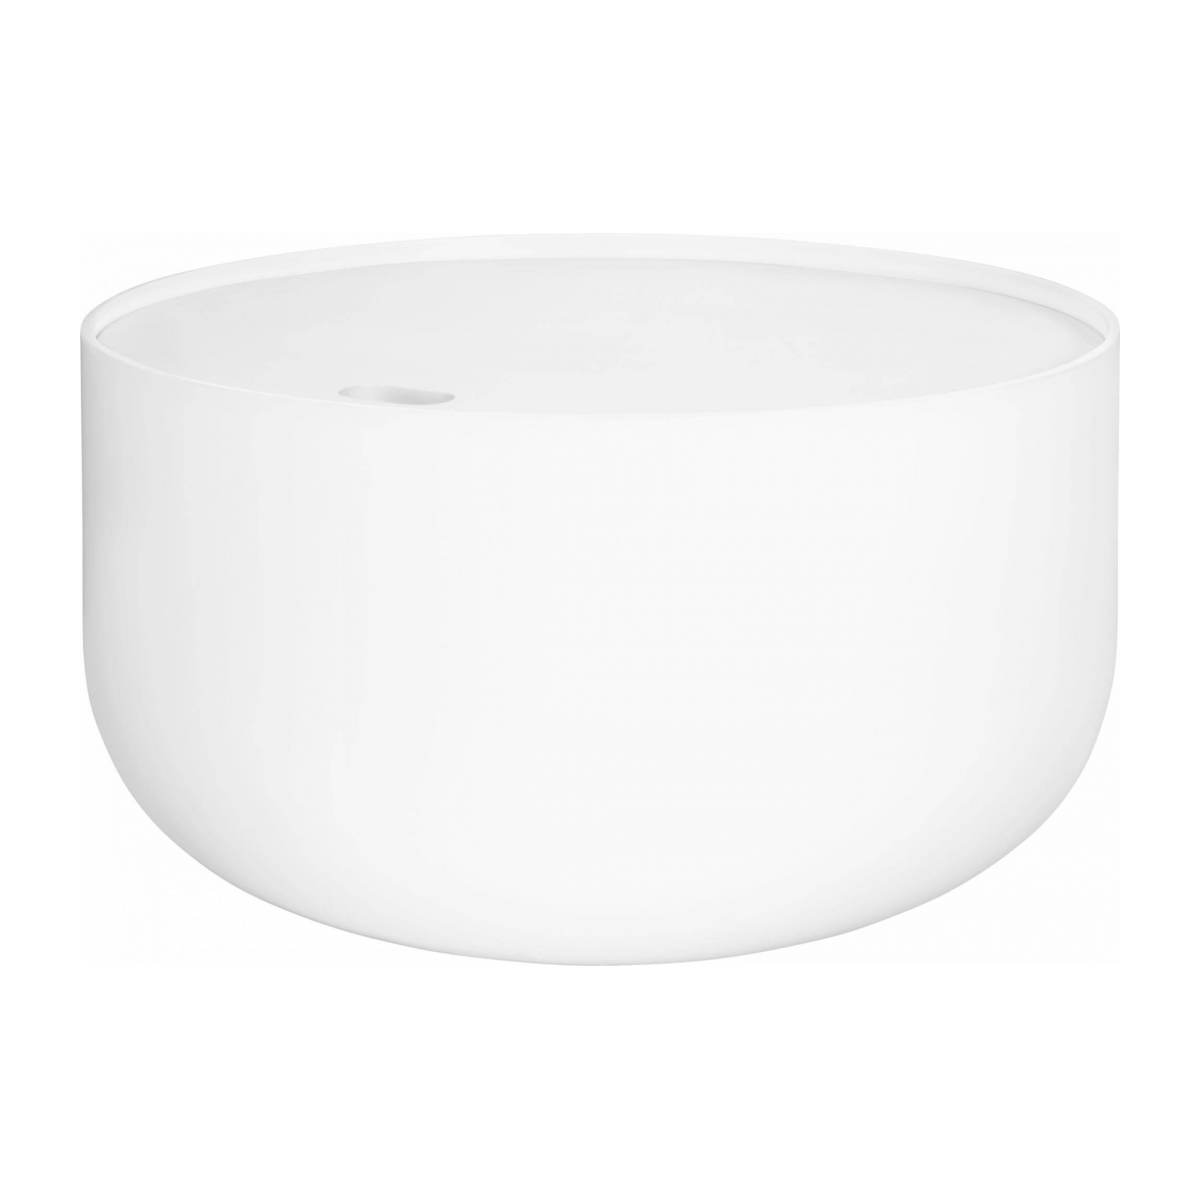 Table d'appoint 60cm blanche n°2